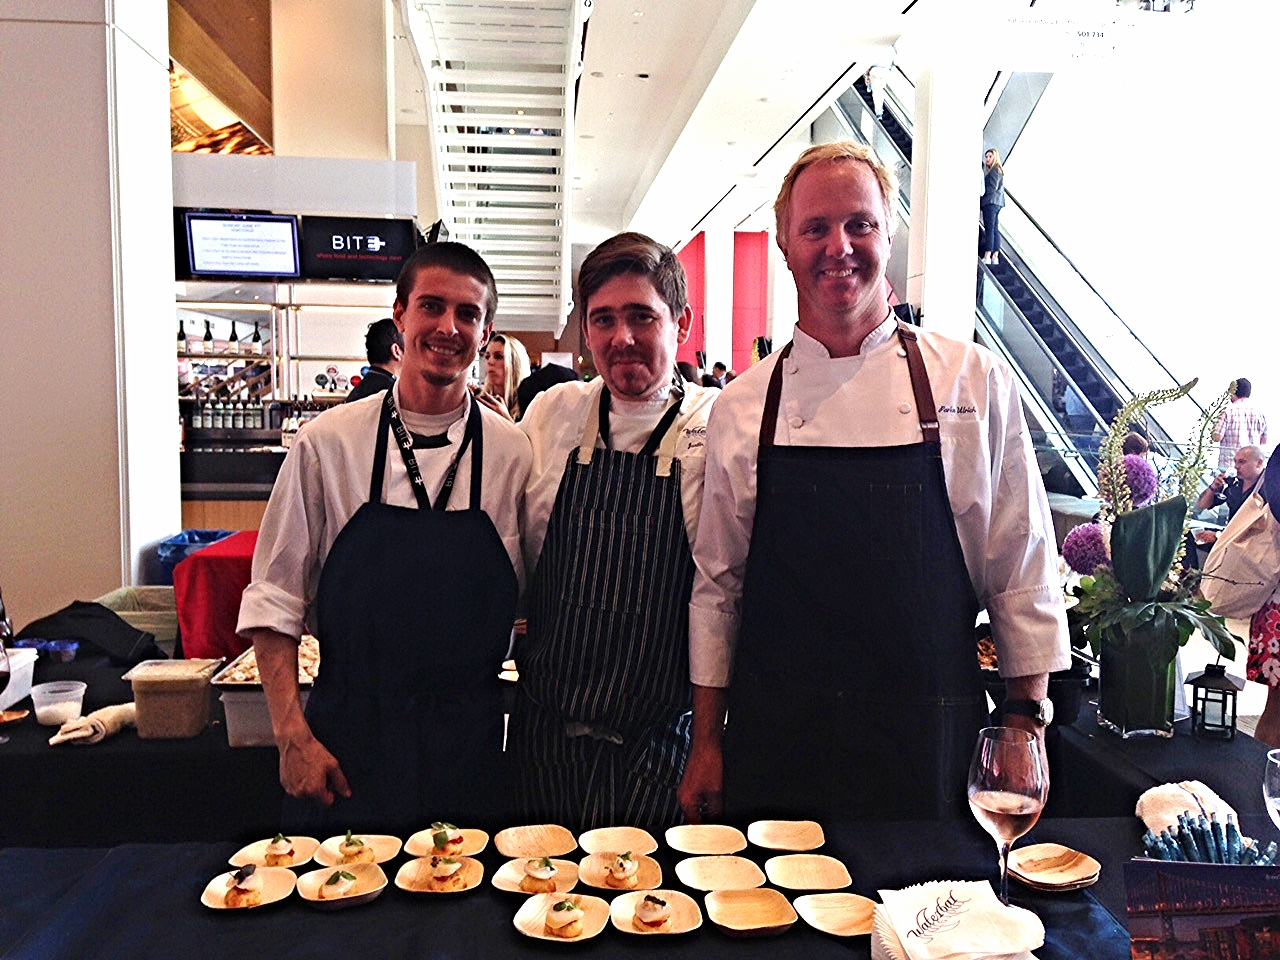 From right to left: Executive Chef Parke Ulrich, Chef de Cuisine Justin Baade and Zack Boyer.